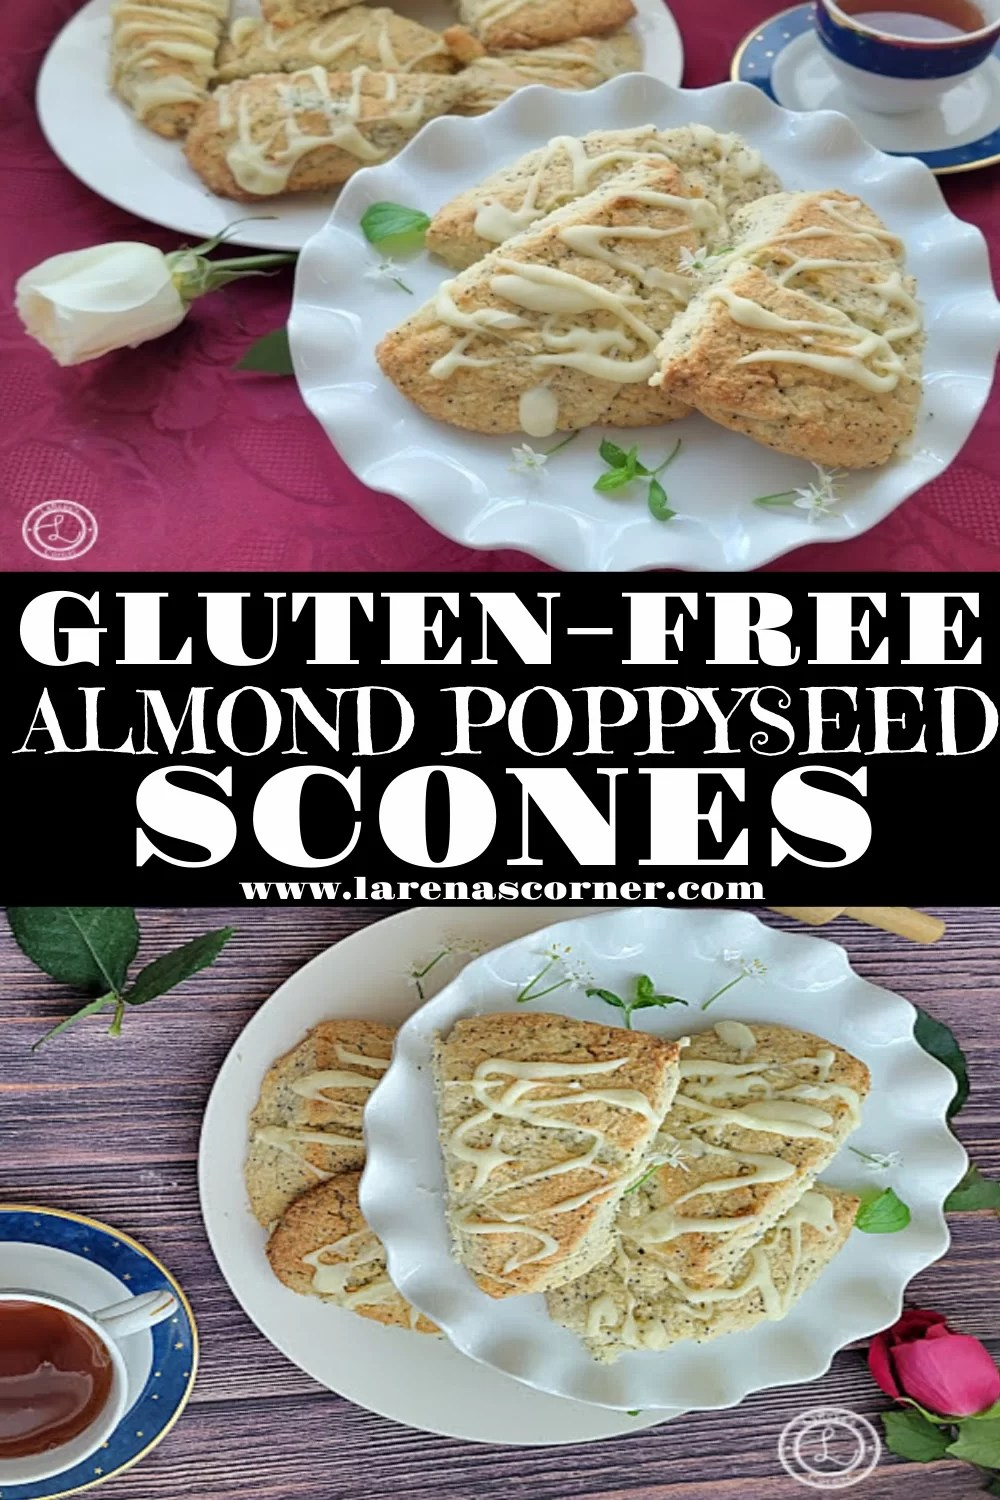 Gluten-Free Almond Poppyseed Scones Collage. Two Different pictures of scones on platters.